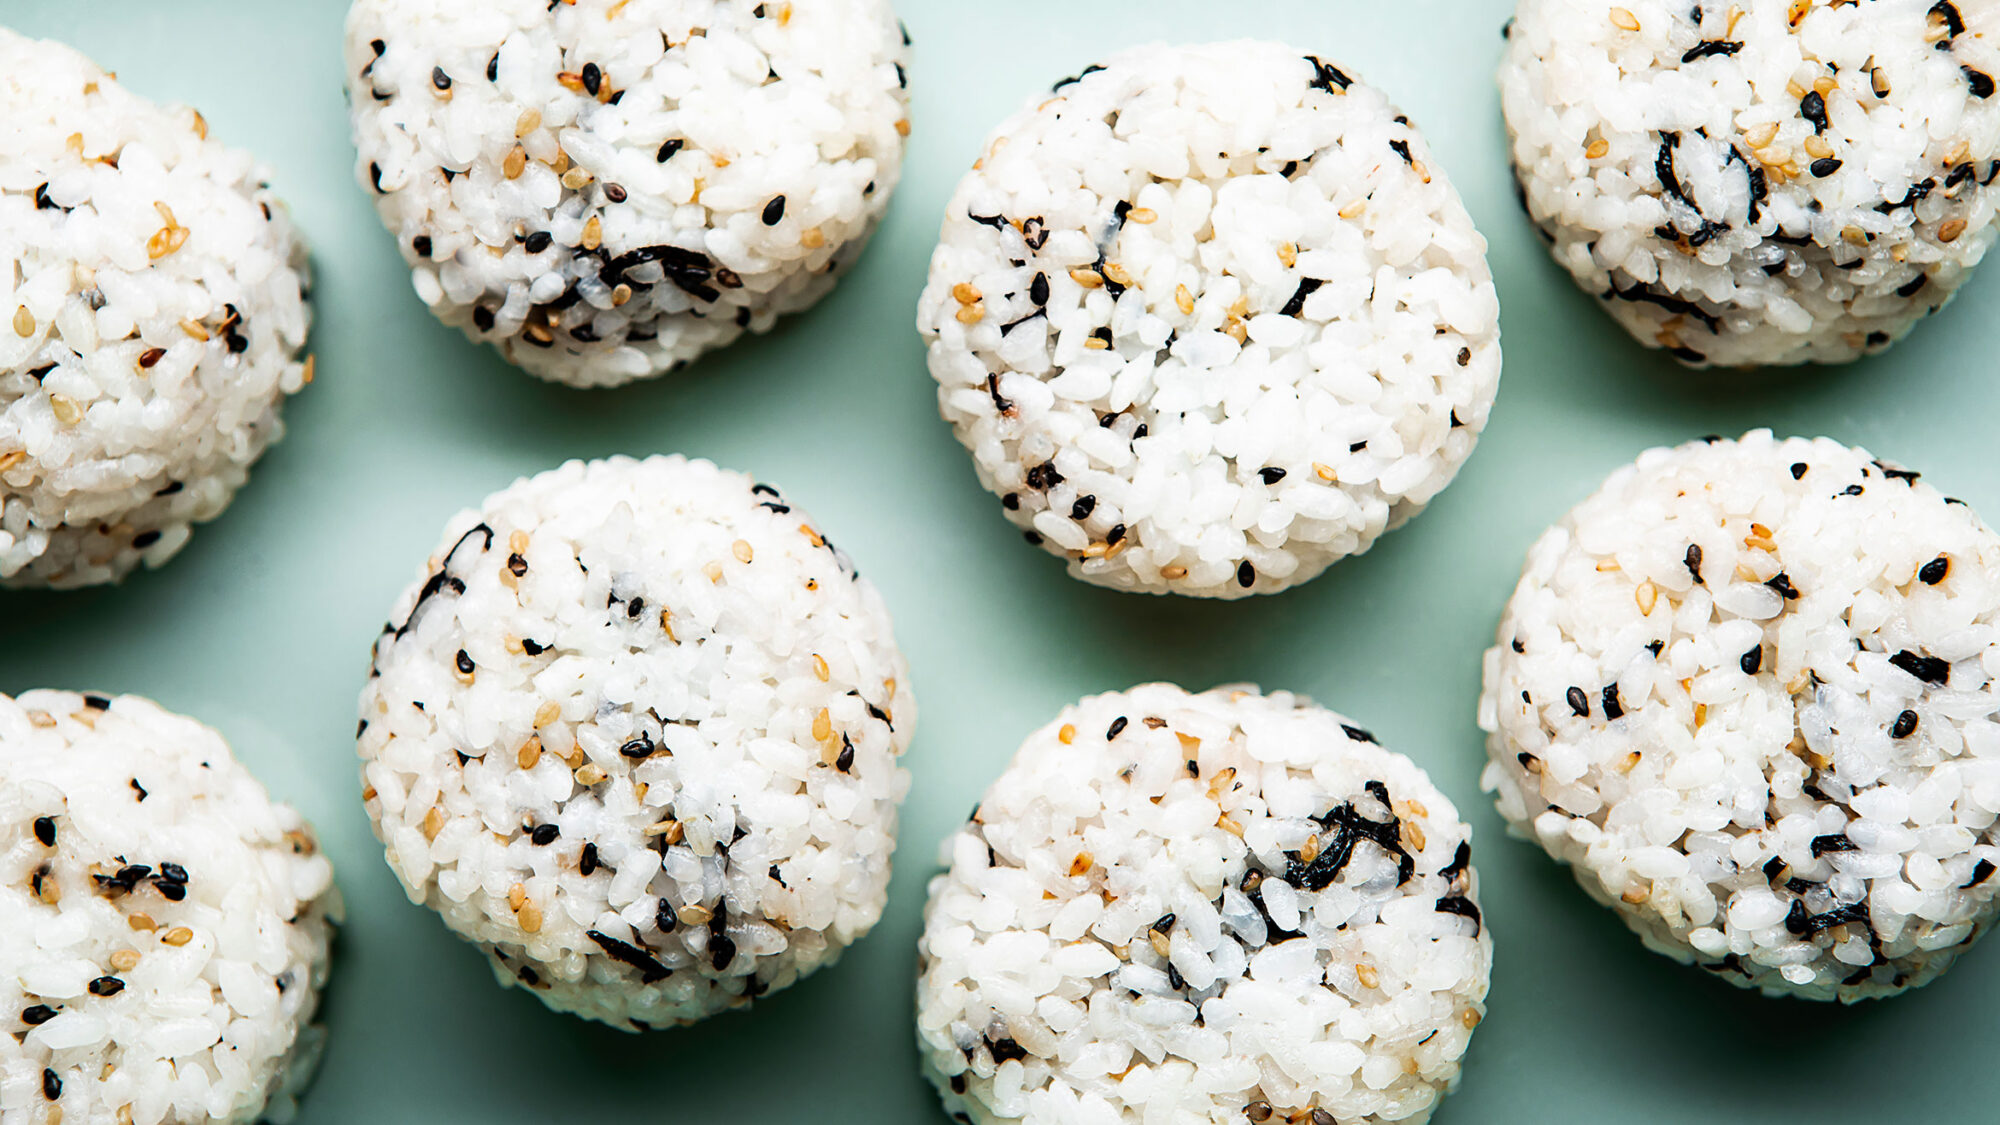 Article-Onigiri-Rice-Ball-Recipe